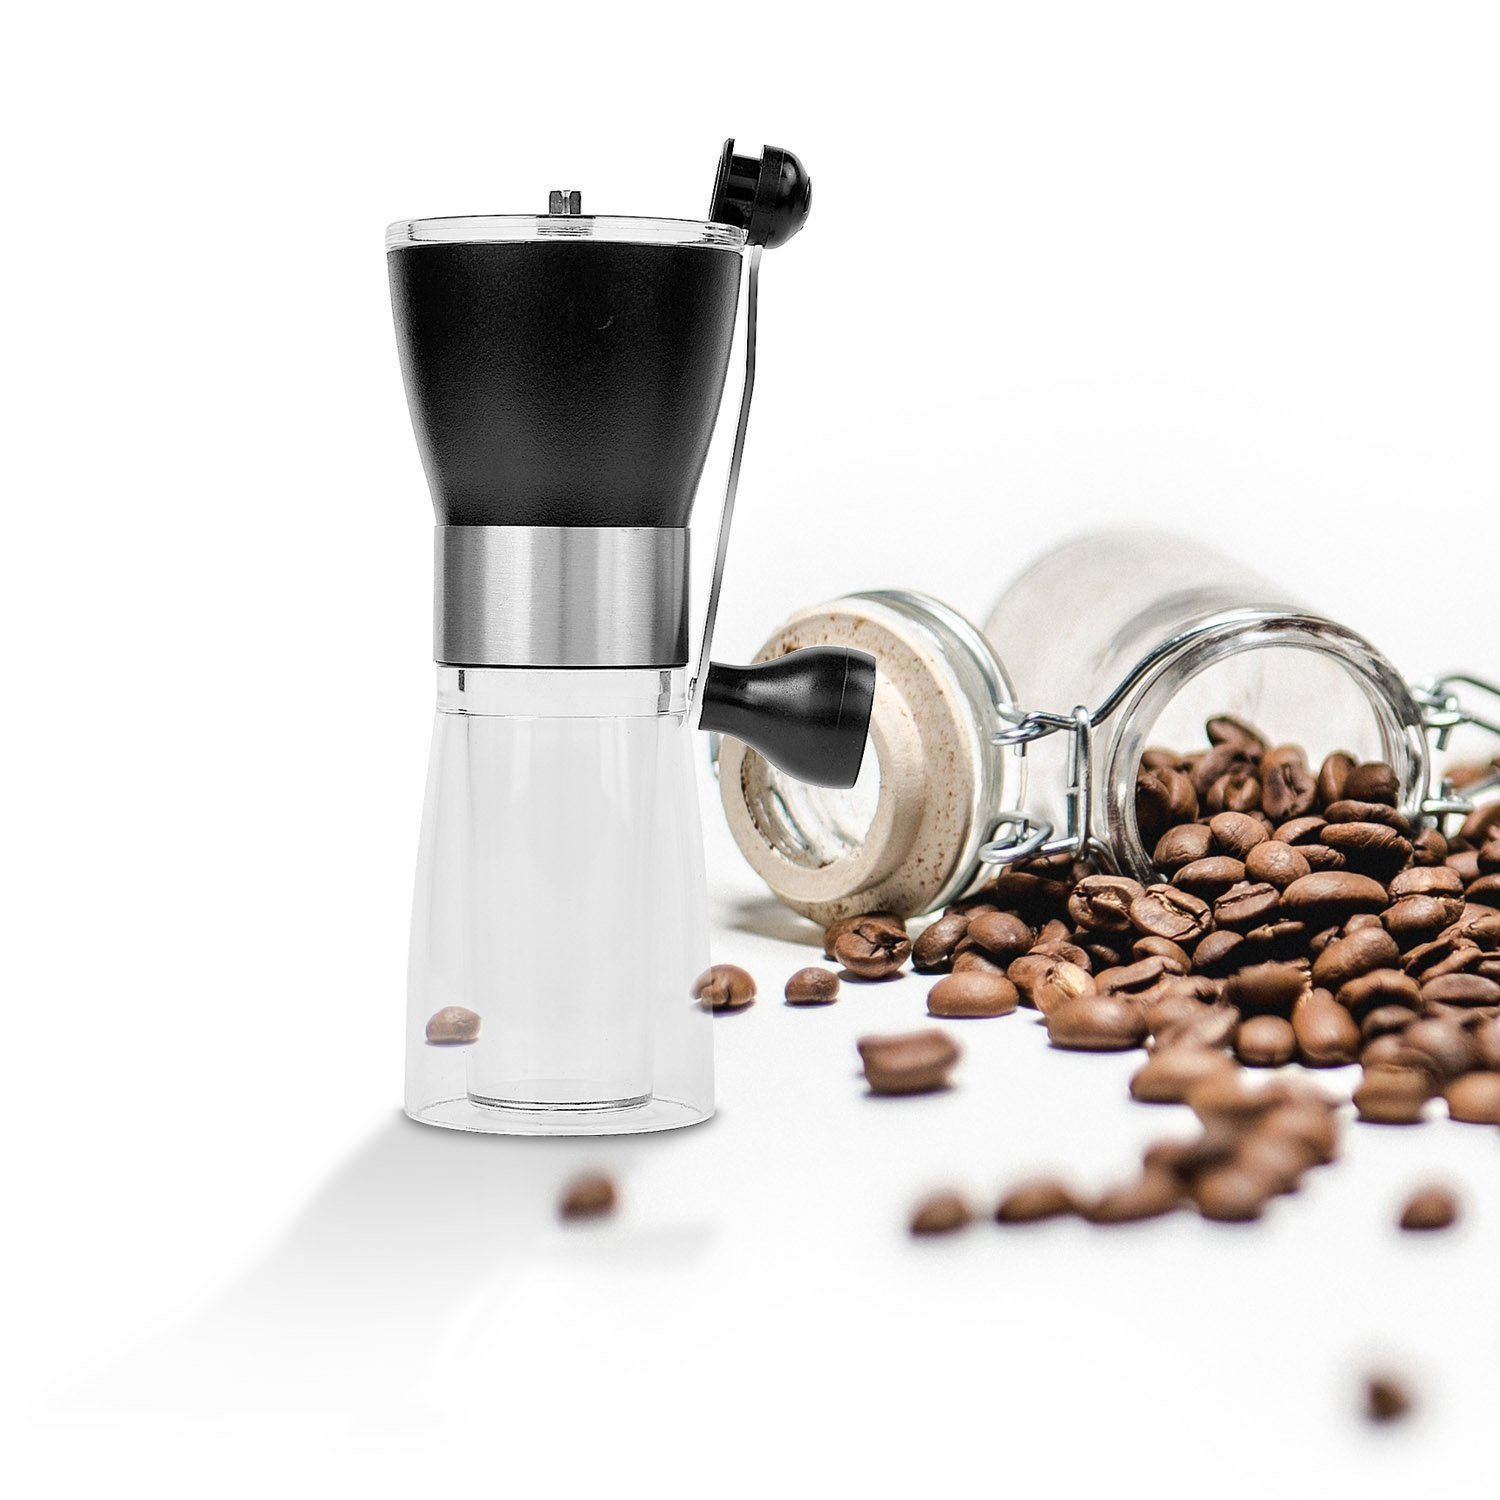 Manual Portable Coffee Grinder With Stainless Steel Handle Hand Crank and Ceramic Burr Mill for Grinding Coffee manual coffee grinder conical burr mill stainless steel portable hand burr grinders